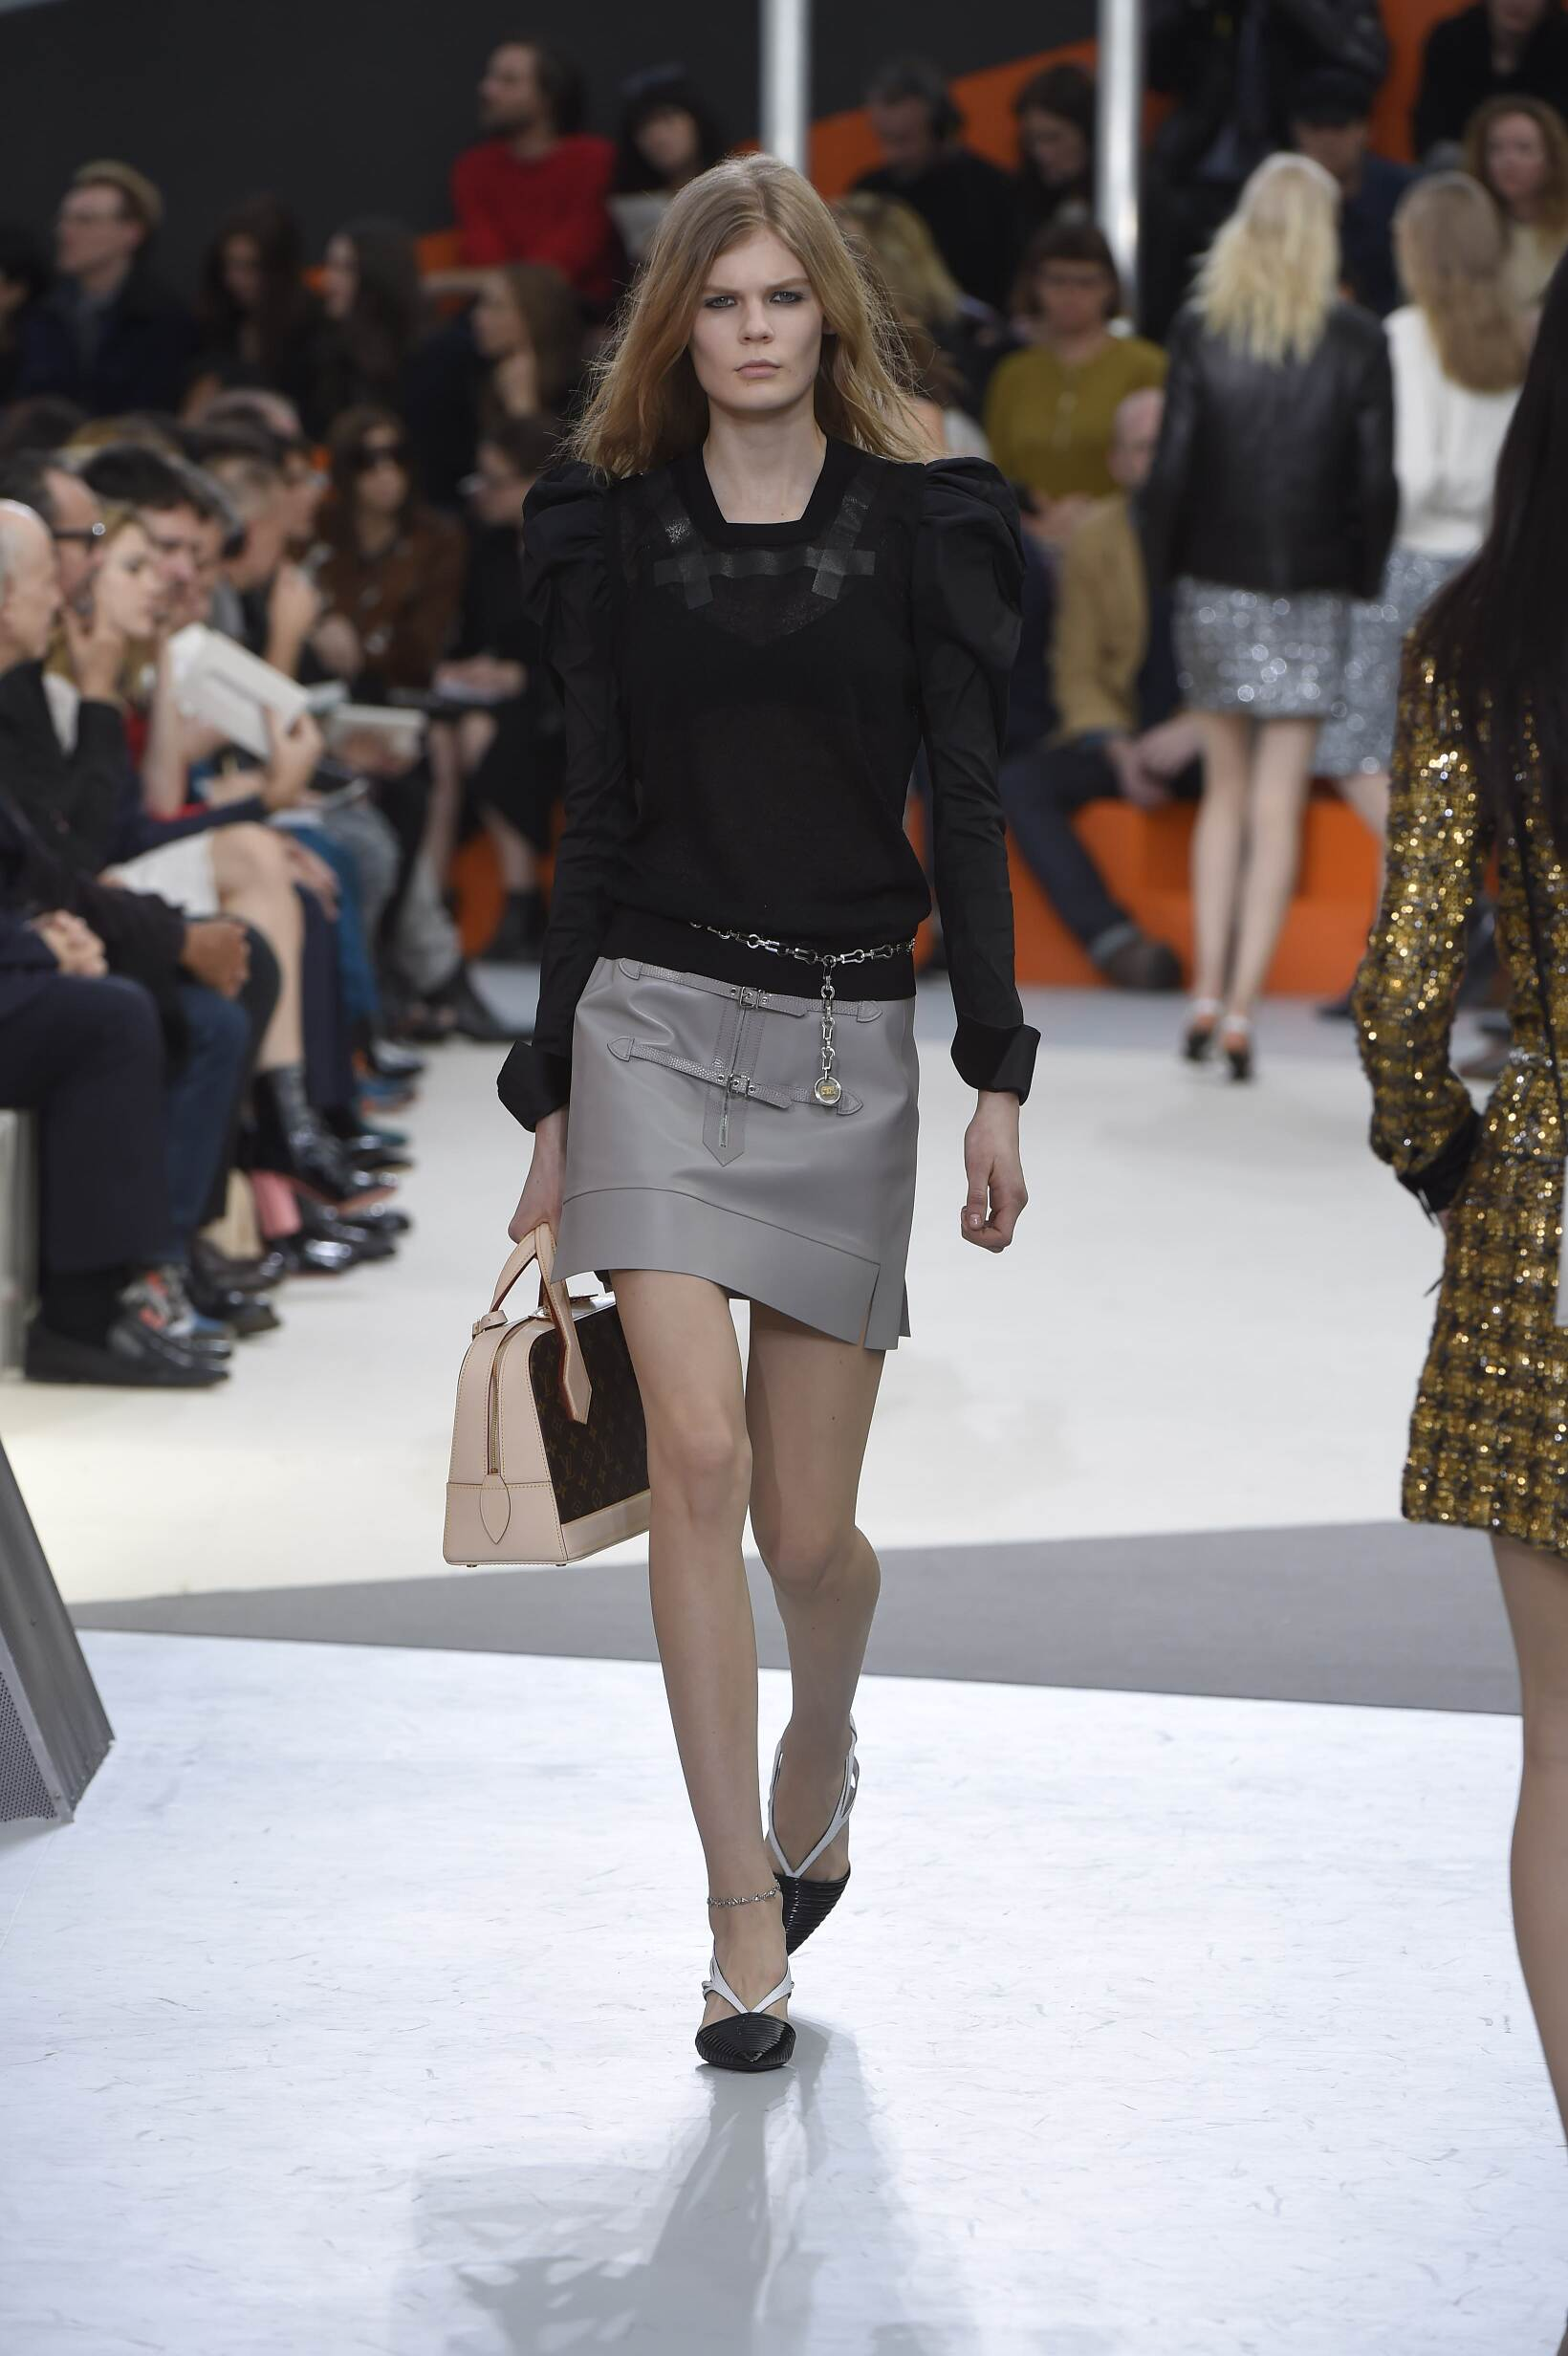 Catwalk Louis Vuitton Fall Winter 2015 16 Women's Collection Paris Fashion Week